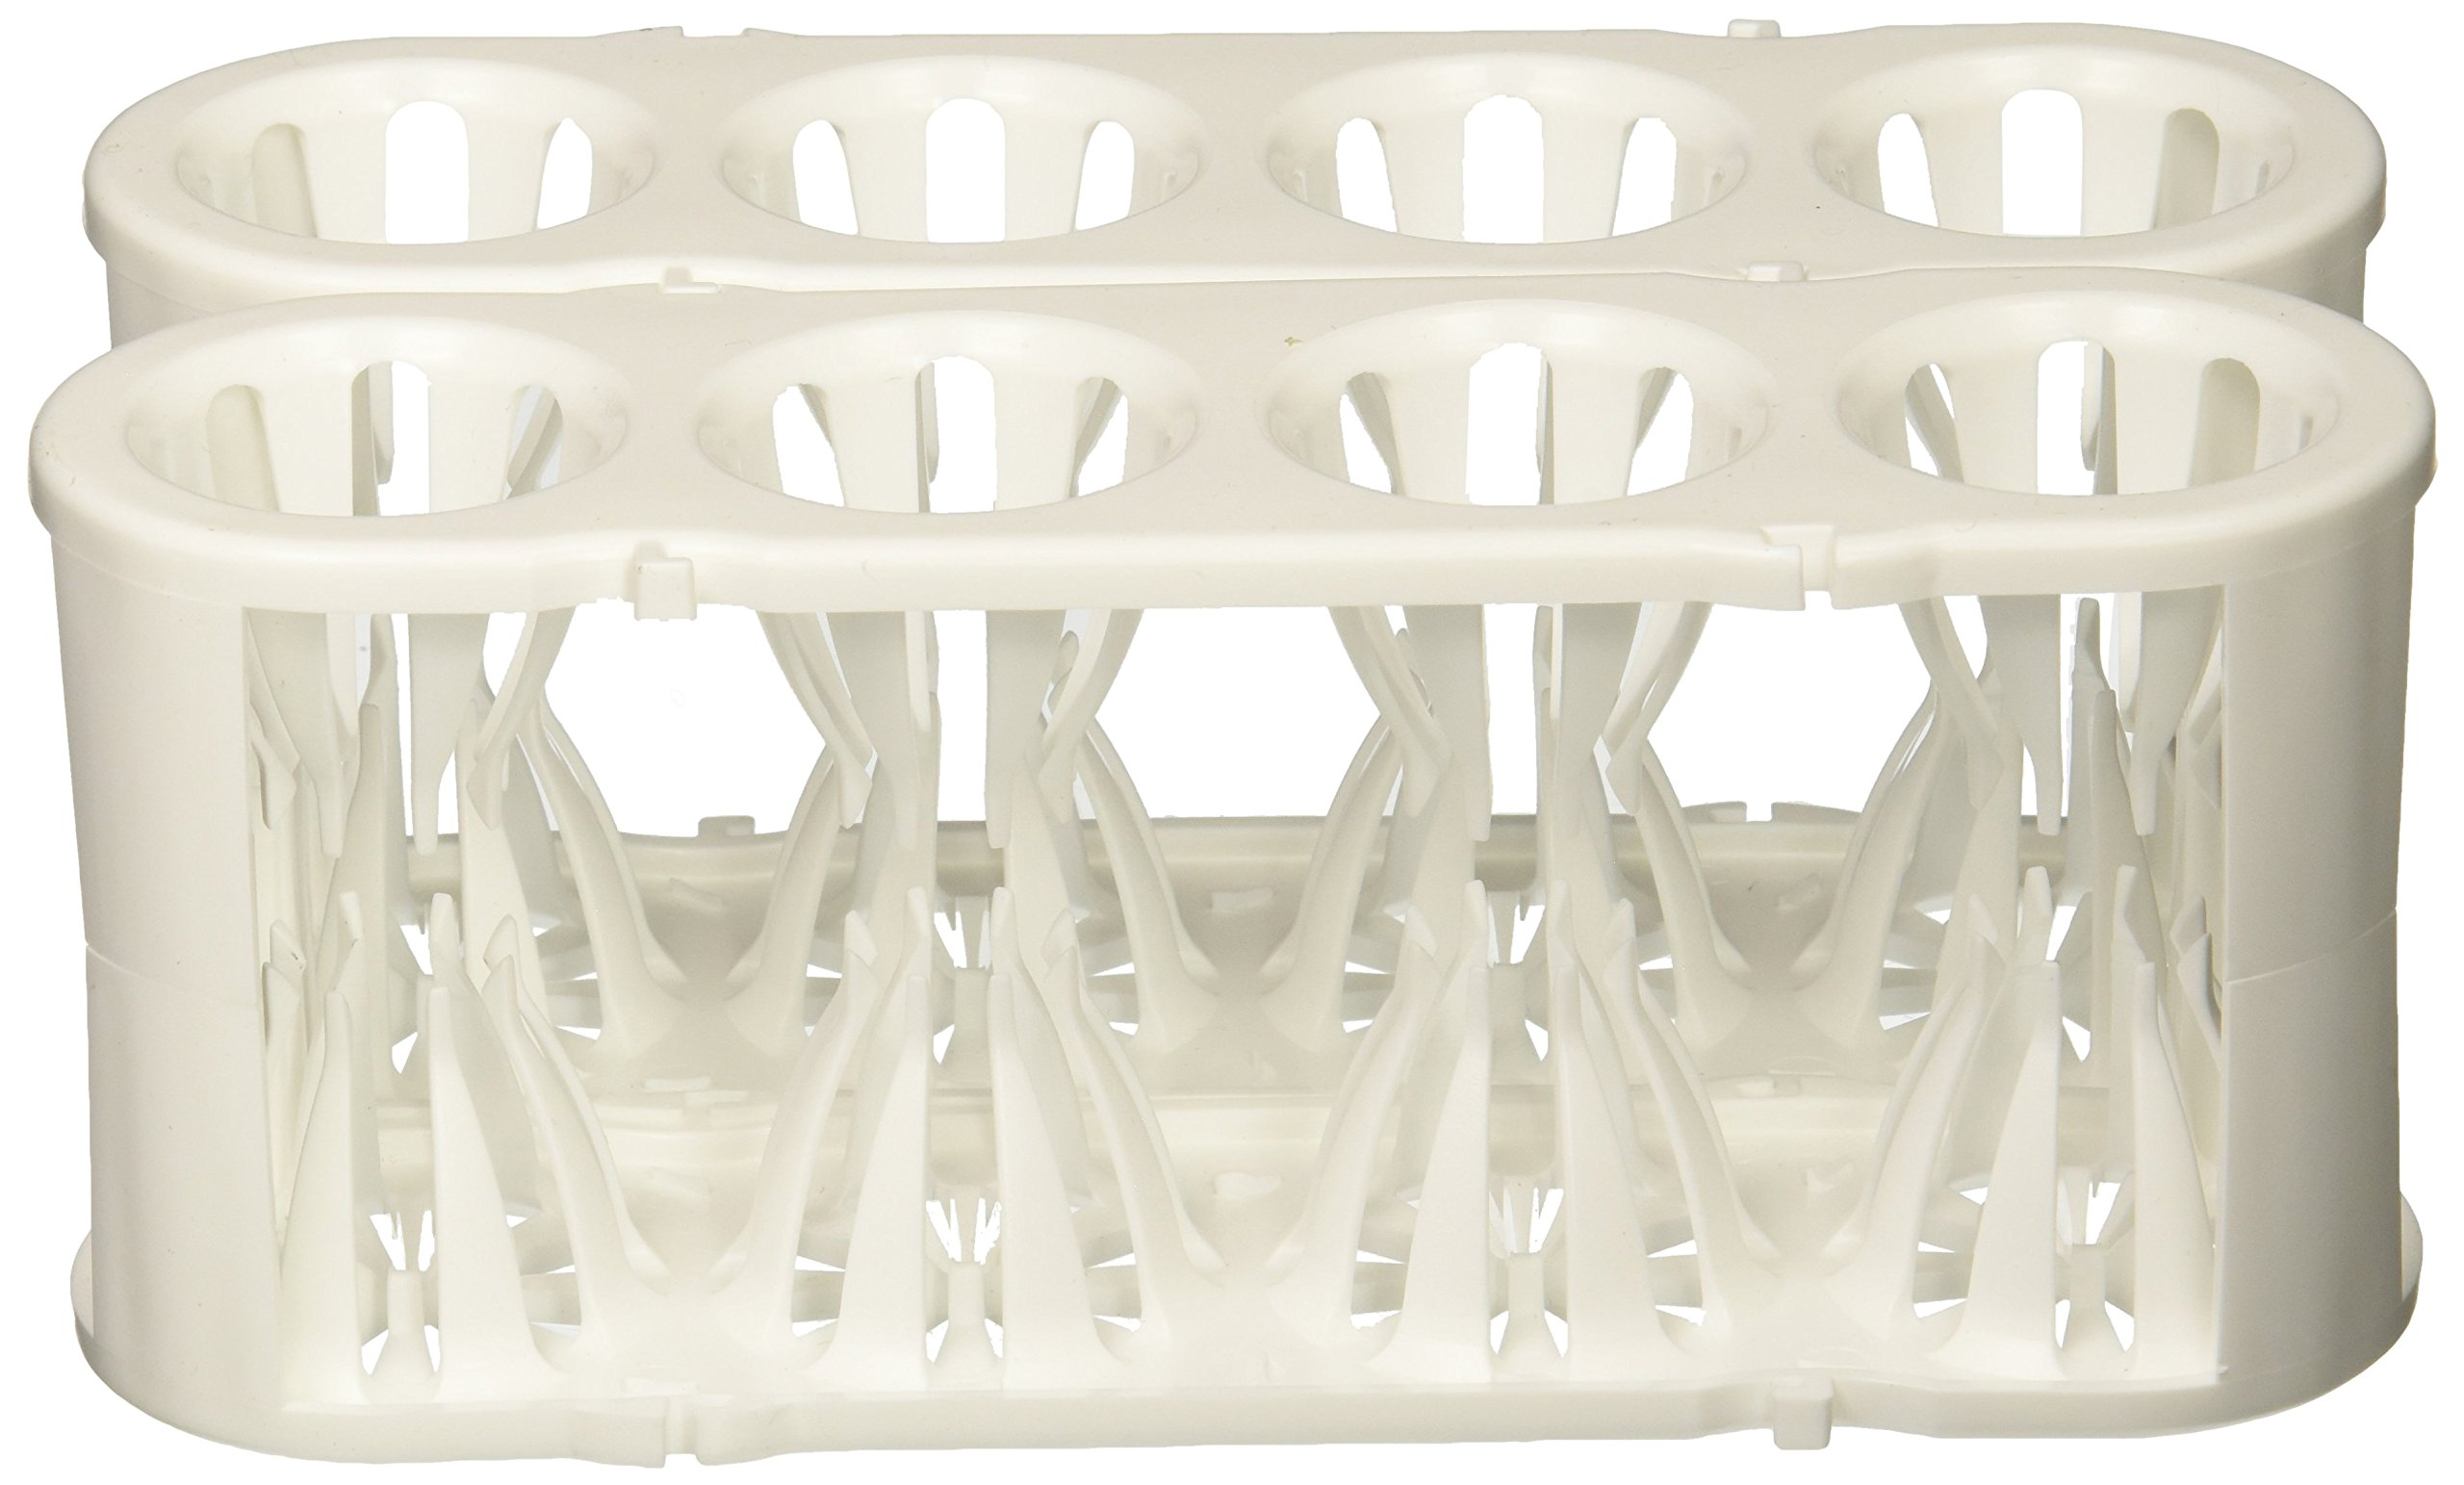 Heathrow HS120188 Adapt-A-Rack, White (Pack of 2) by Heathrow Scienitific